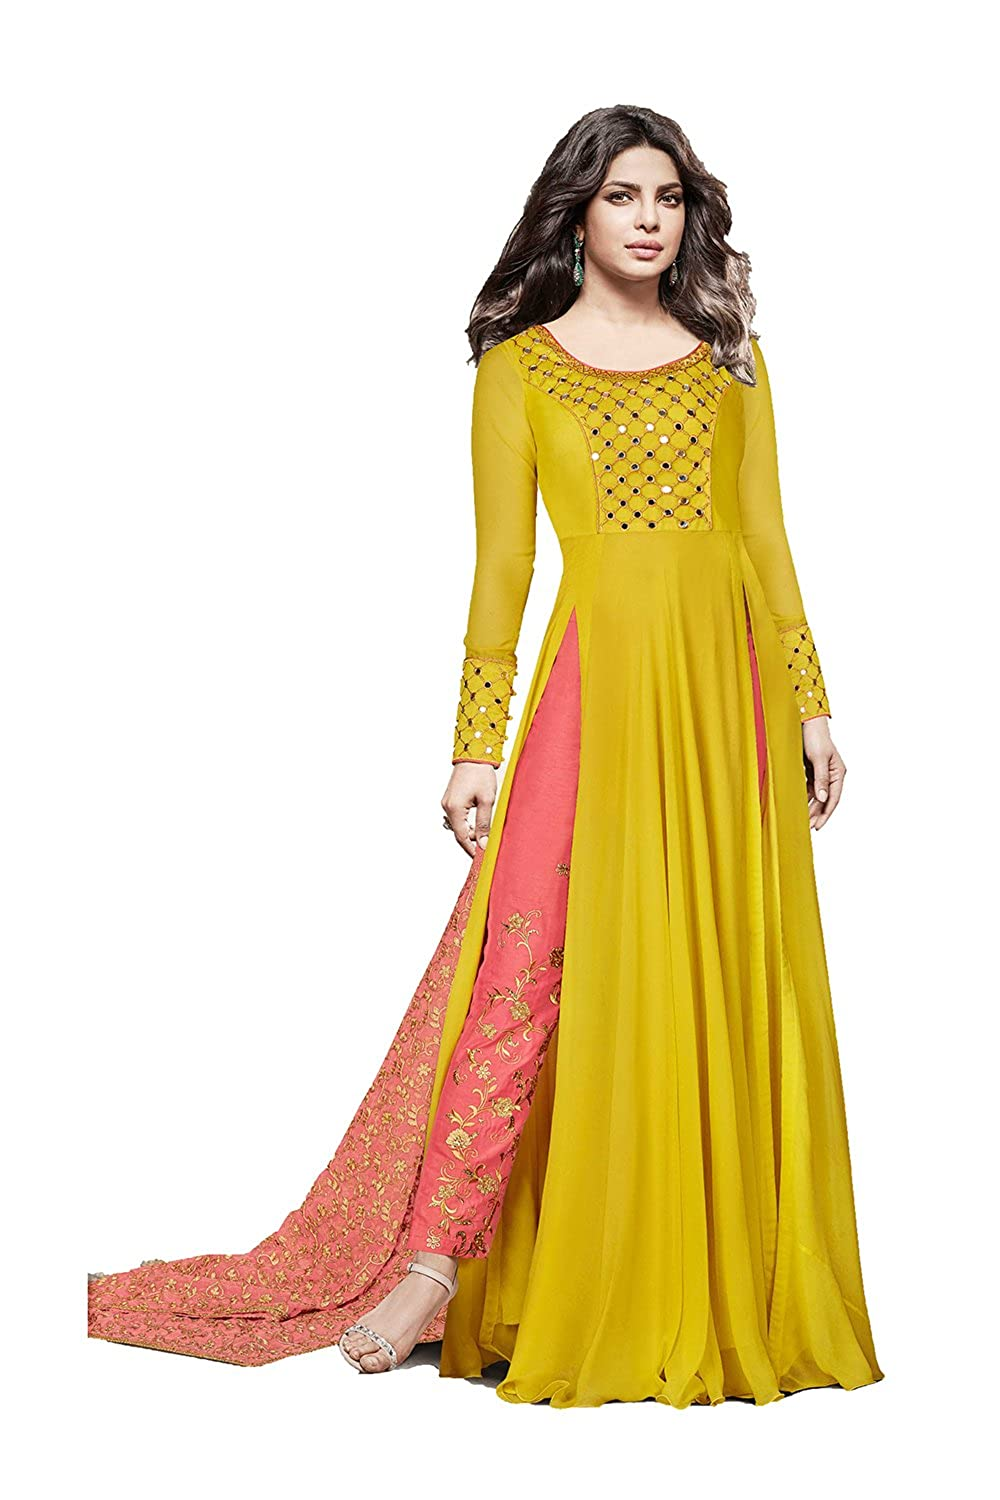 Dessa Collections Indian Women Designer Partywear Ethnic Traditonal Salwar Kameez. FZ 1855